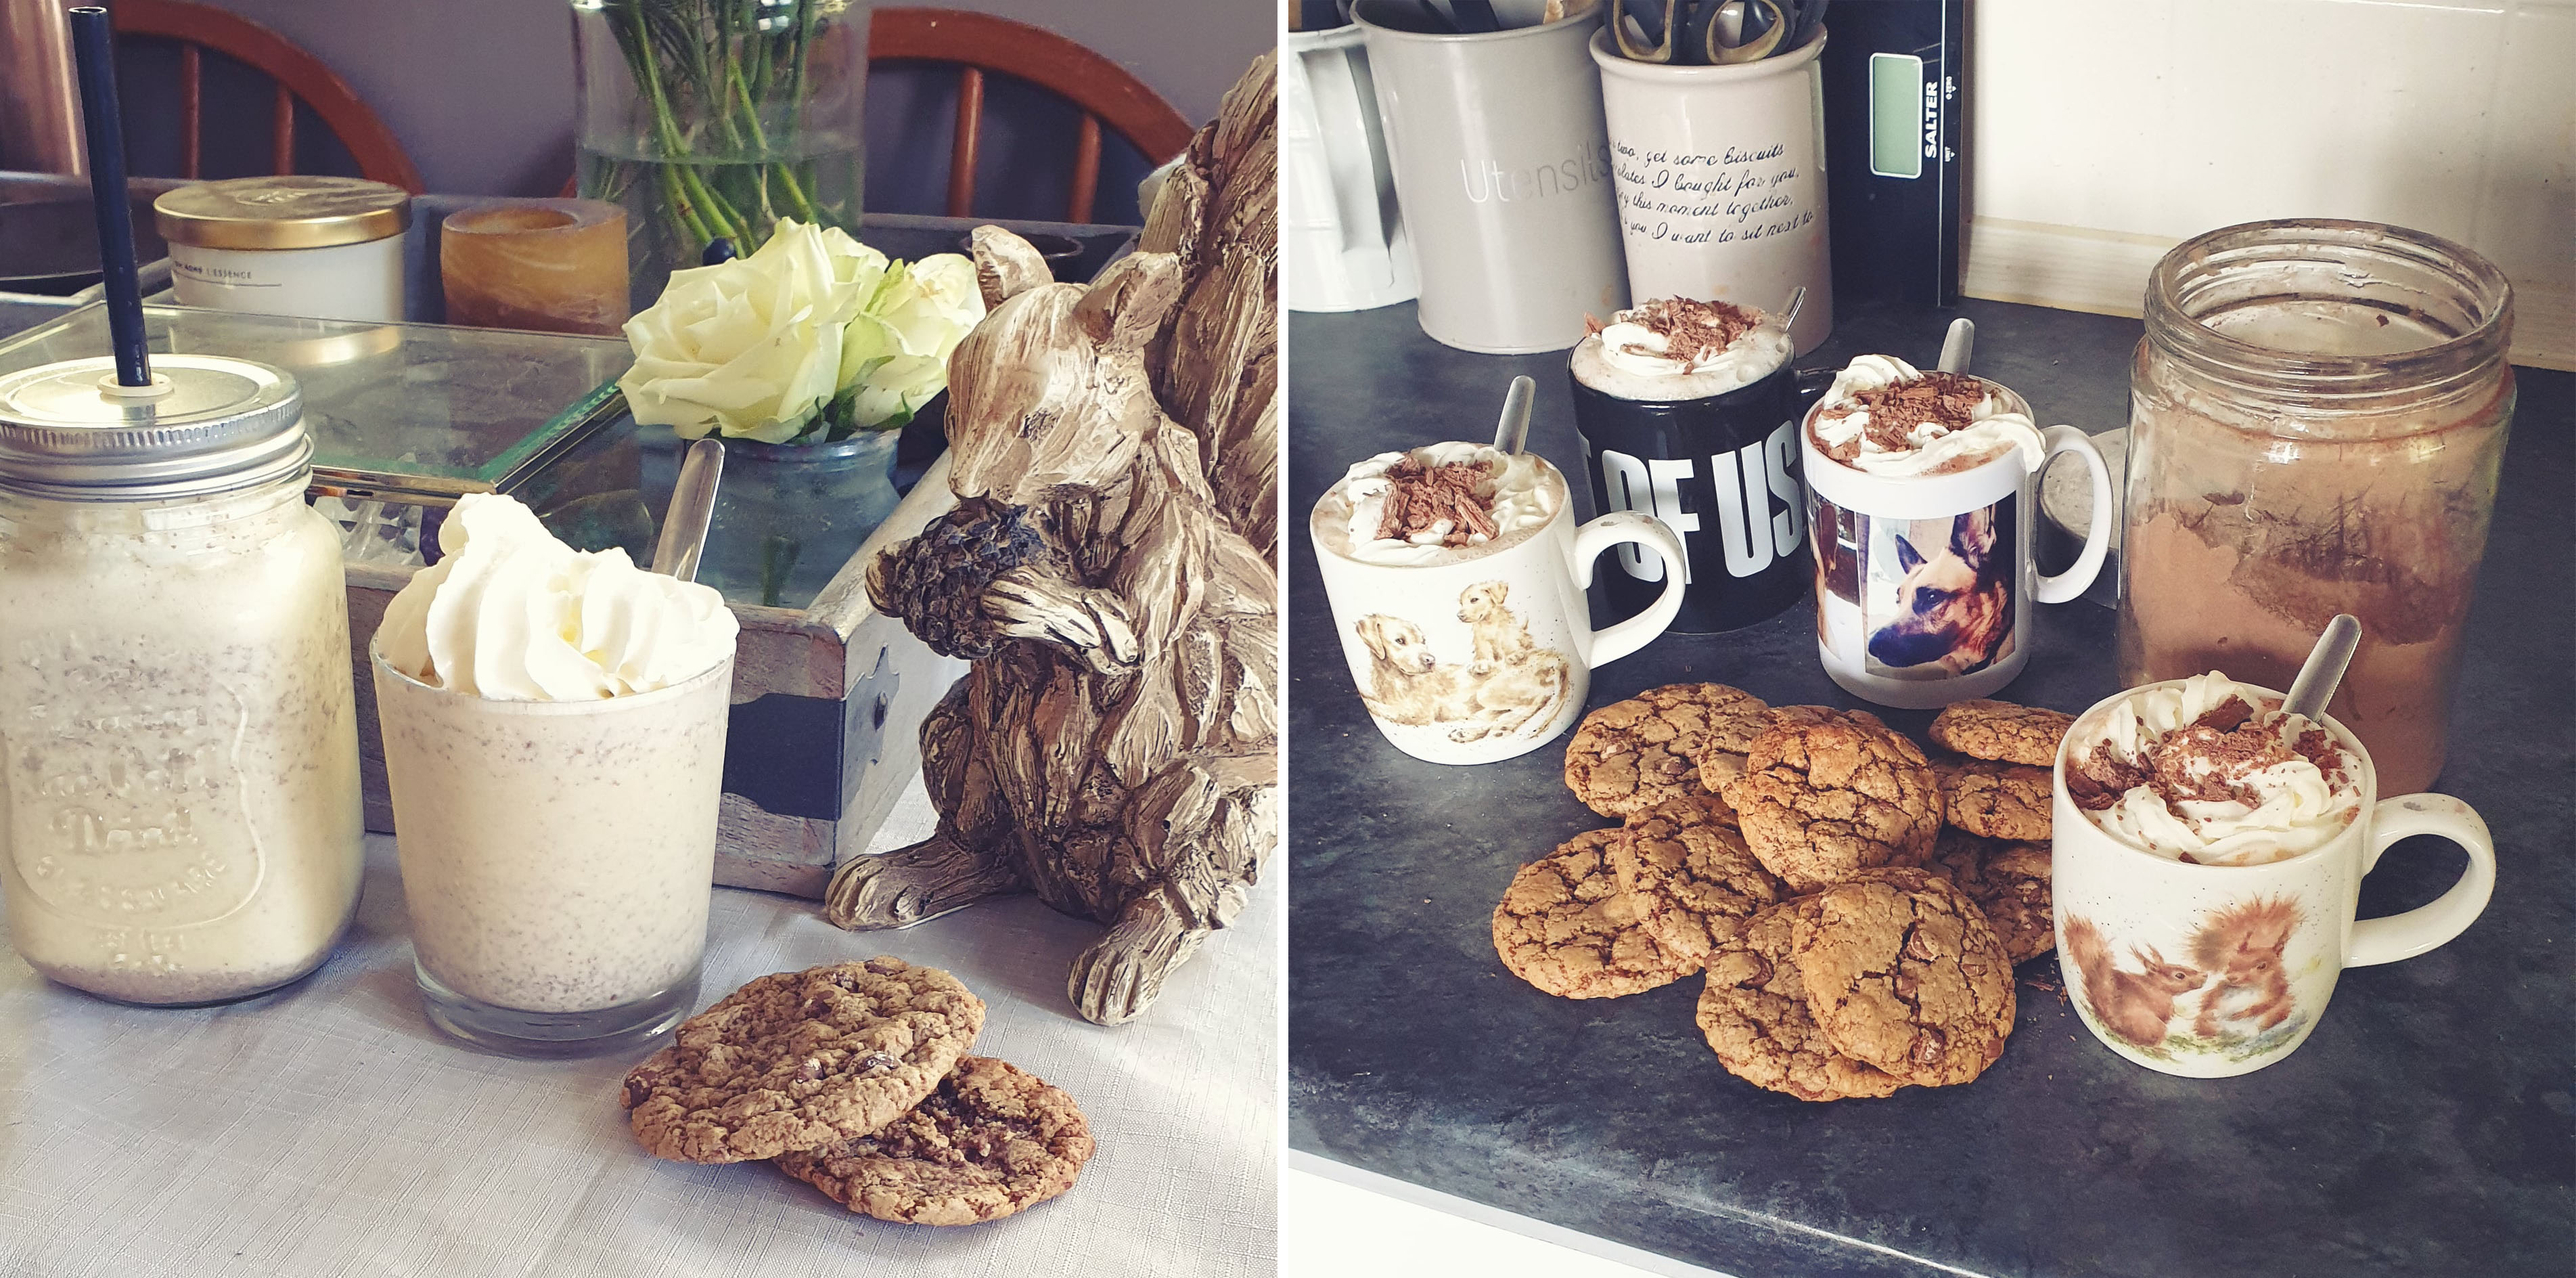 Milkshake, Hot Chocolate and cookies - The Last Krystallos